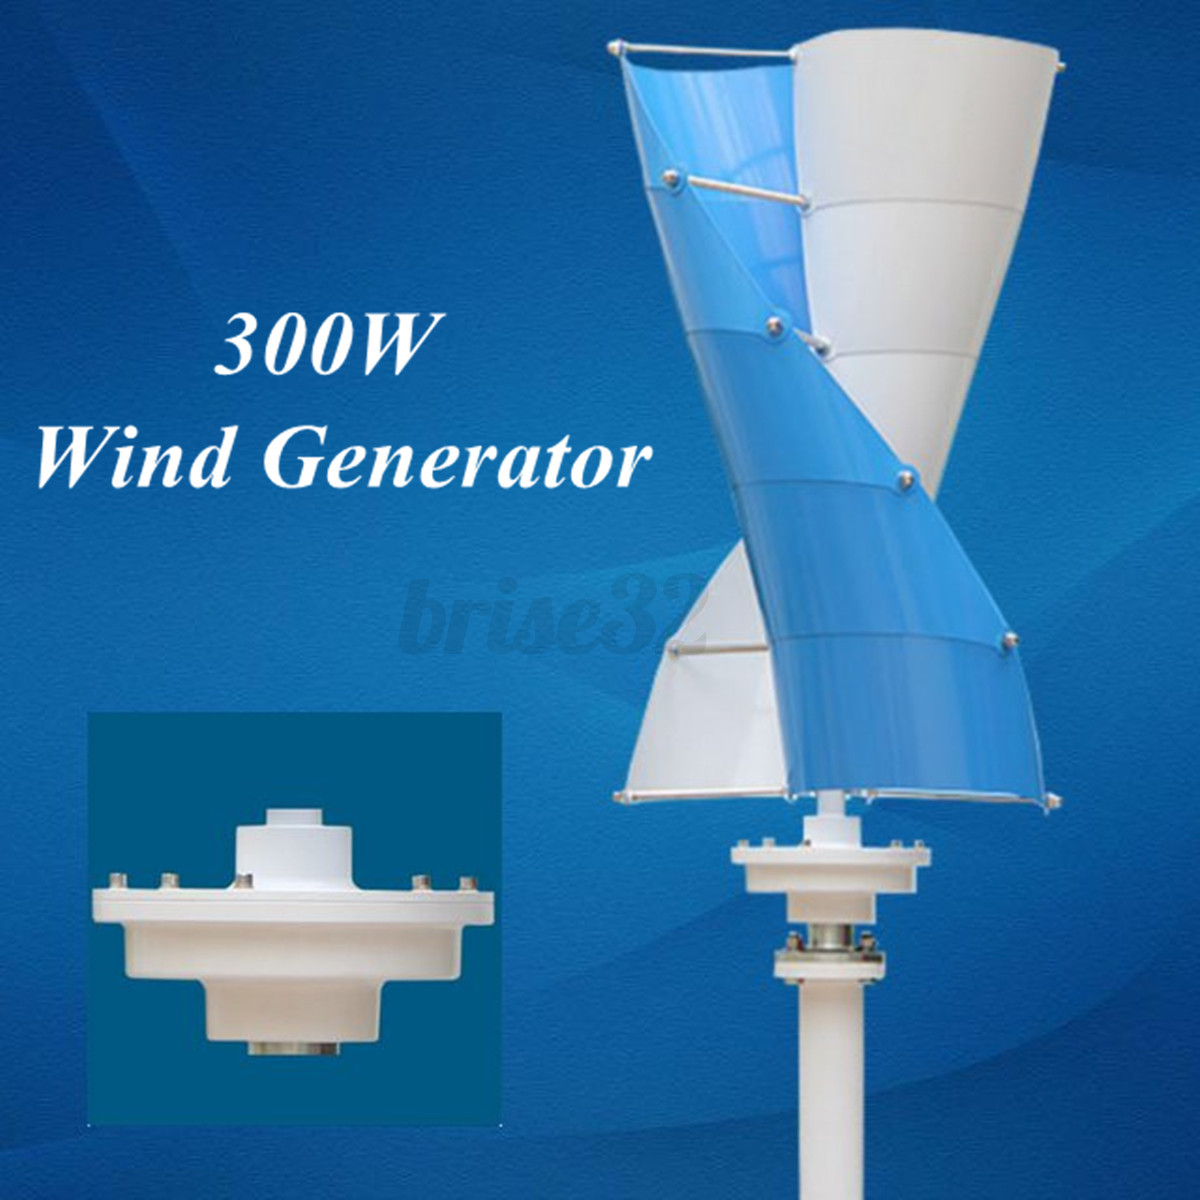 Wind Turbine Wiring Diagram Air 403 Wind Generators And Air Wind